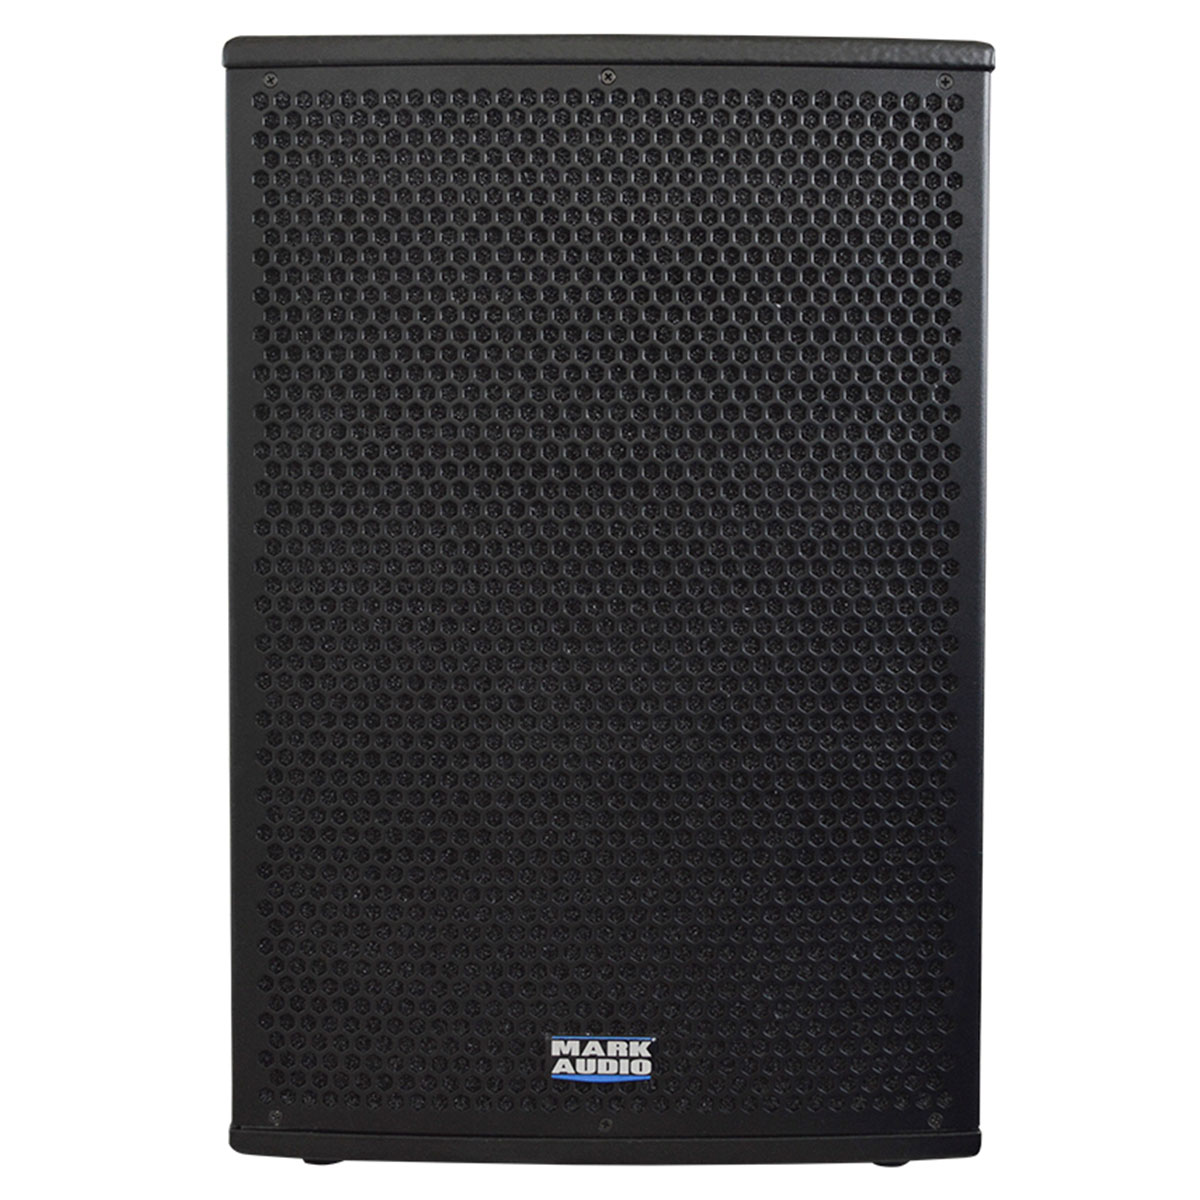 CP600 - Caixa Passiva 100W CP 600 - Mark Audio